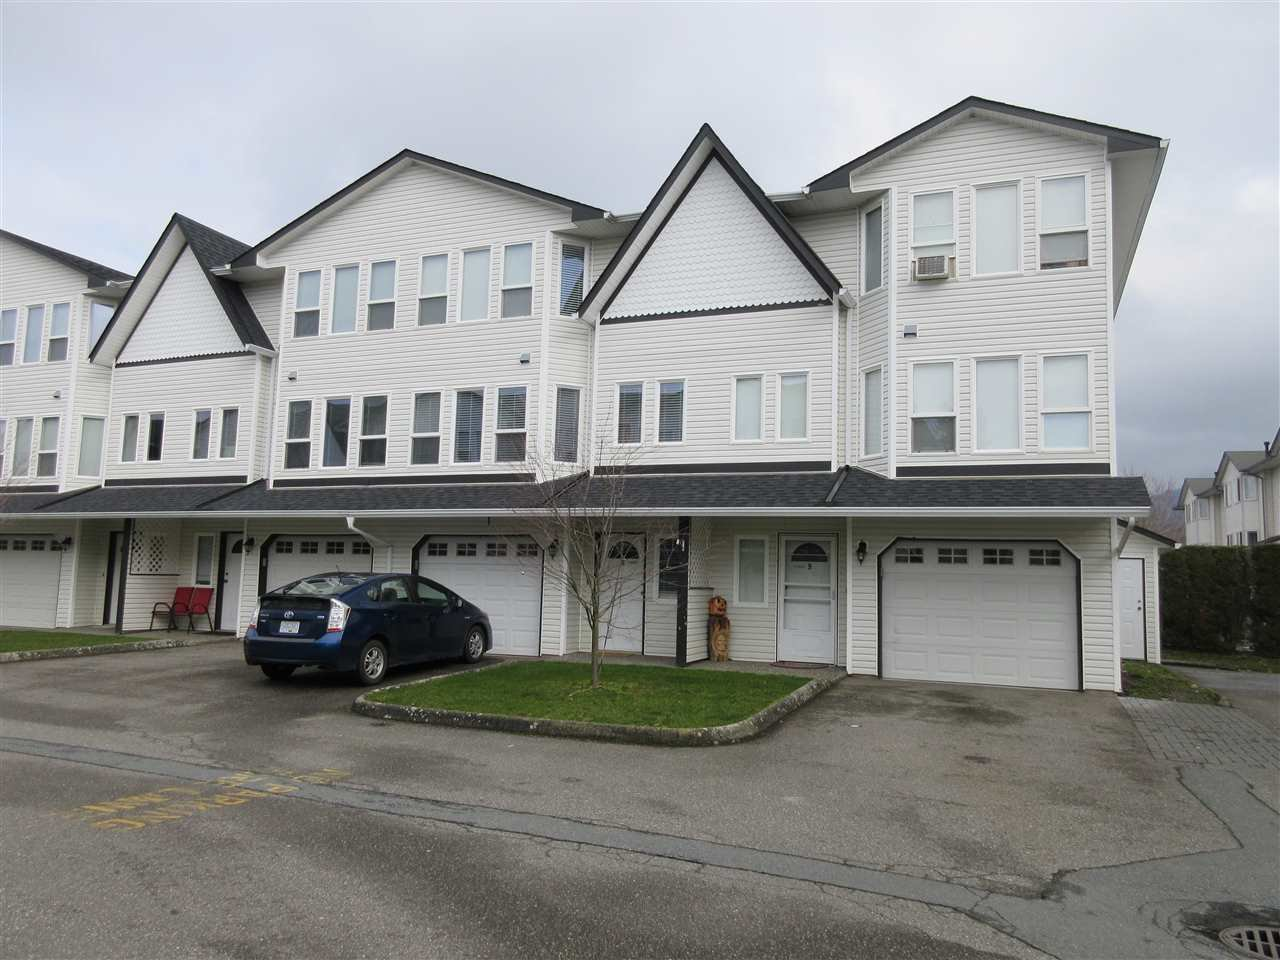 """Main Photo: 9 45286 WATSON Road in Chilliwack: Vedder S Watson-Promontory Townhouse for sale in """"WATSON WILLOWS"""" (Sardis)  : MLS®# R2439721"""